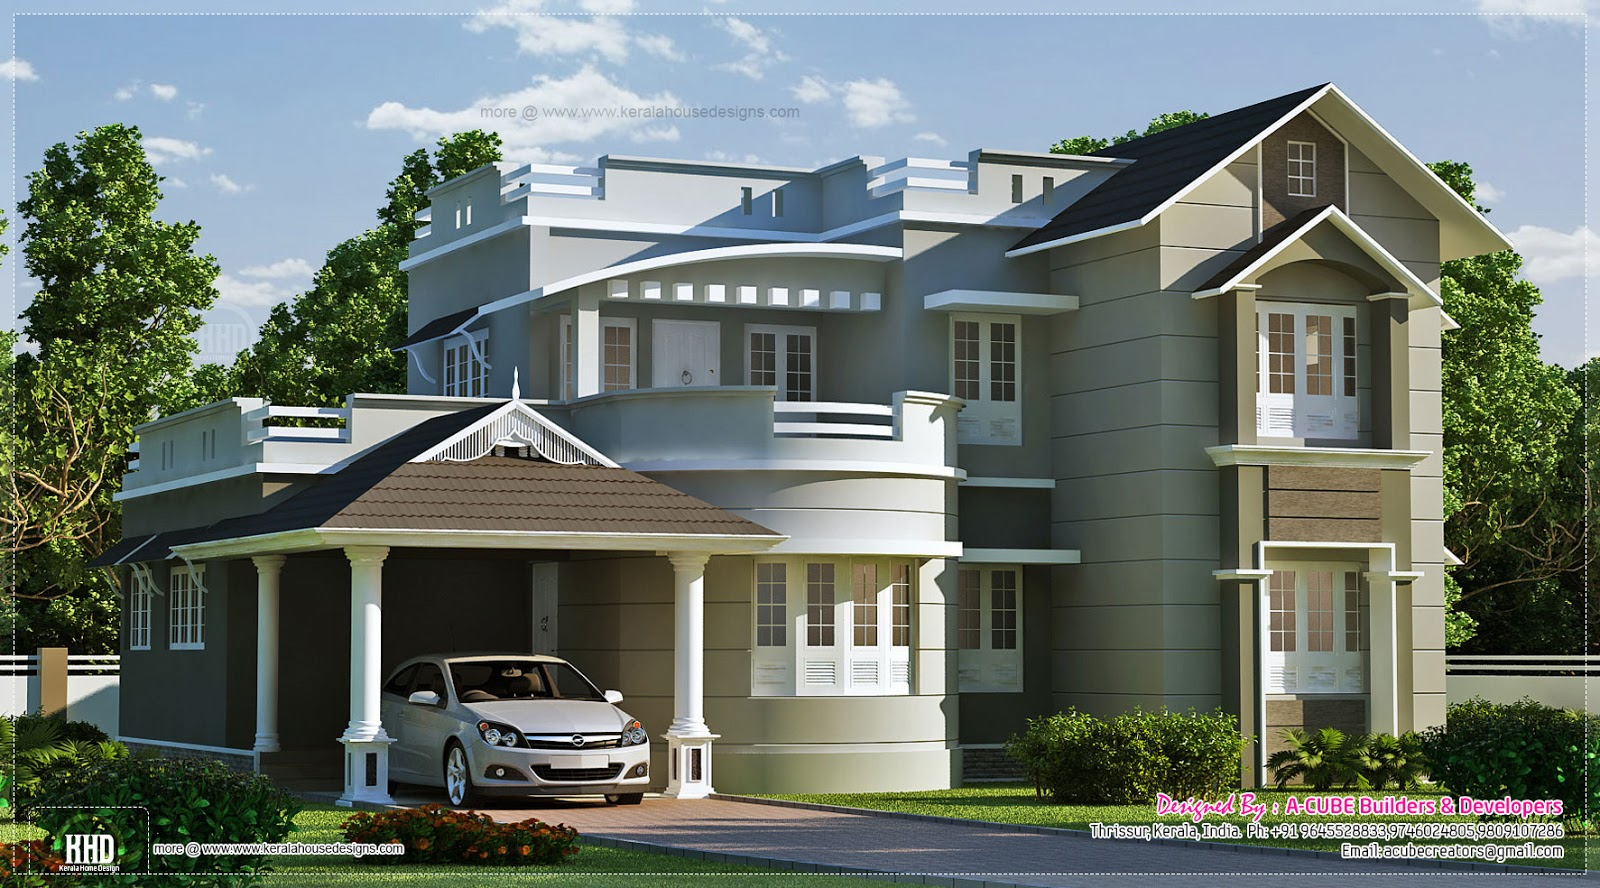 New style home exterior in 1800 kerala home for Indian home design photos exterior